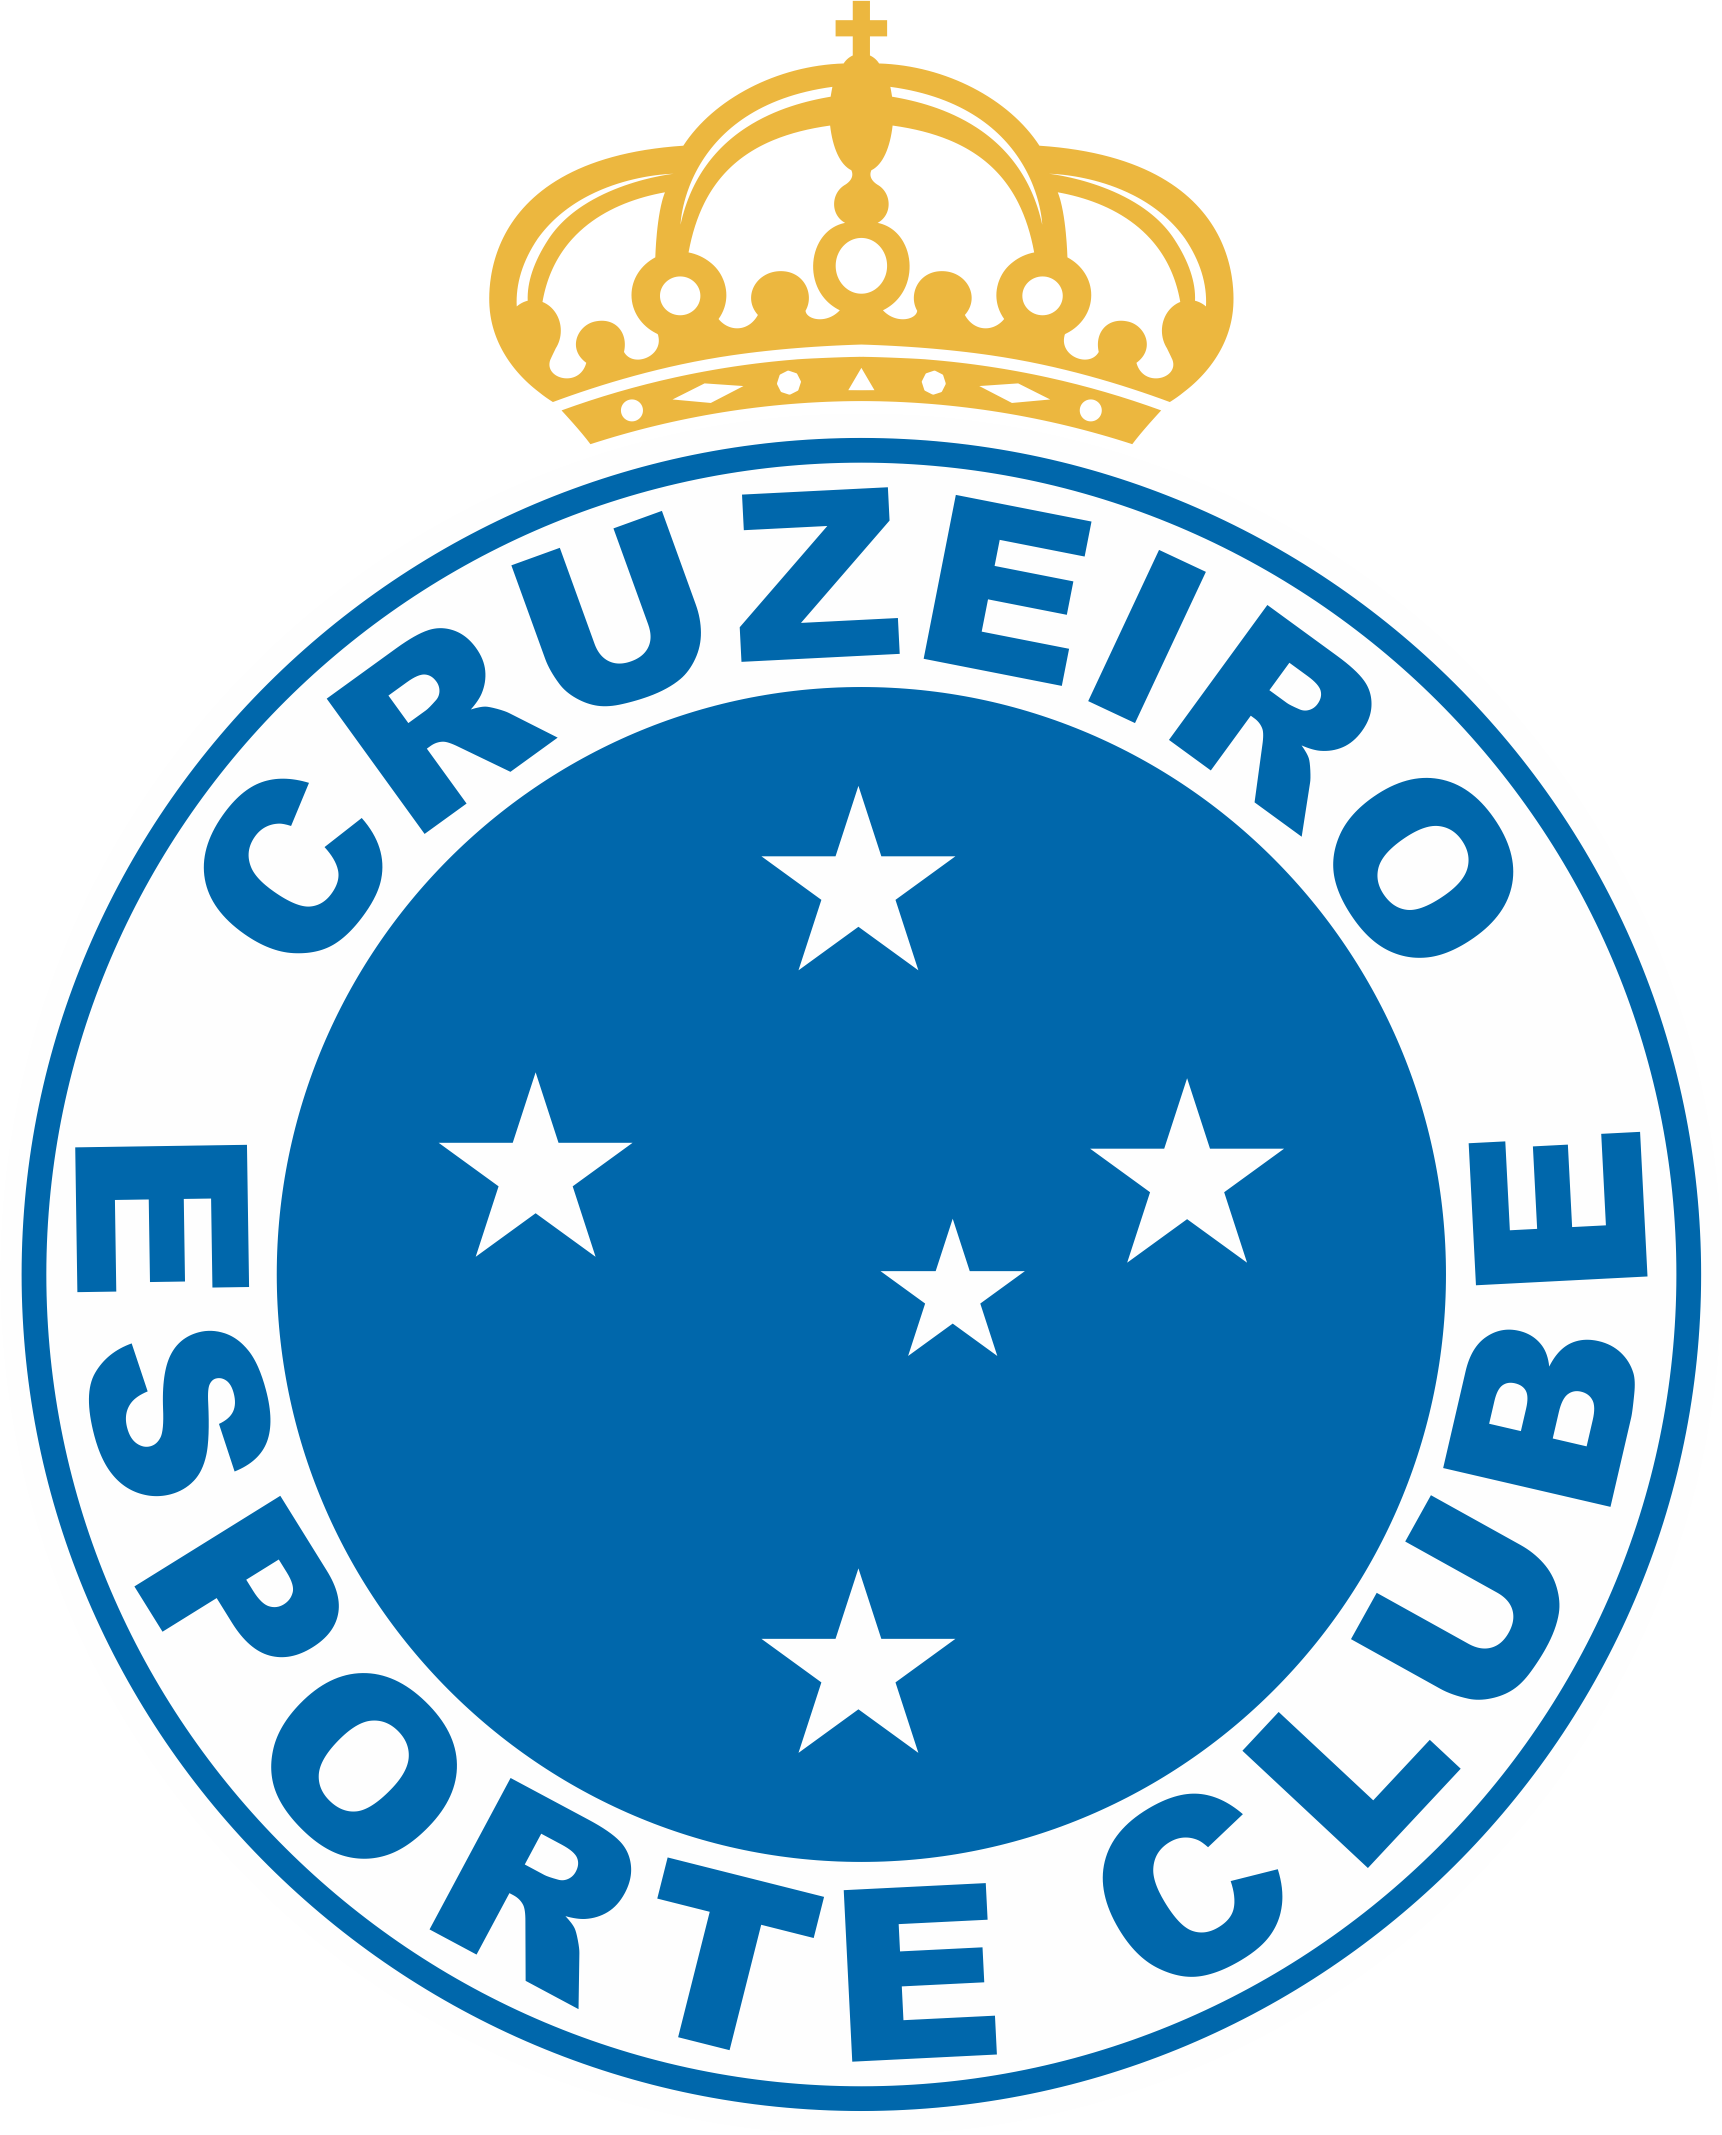 Cruzeiro png clipart images gallery for free download.